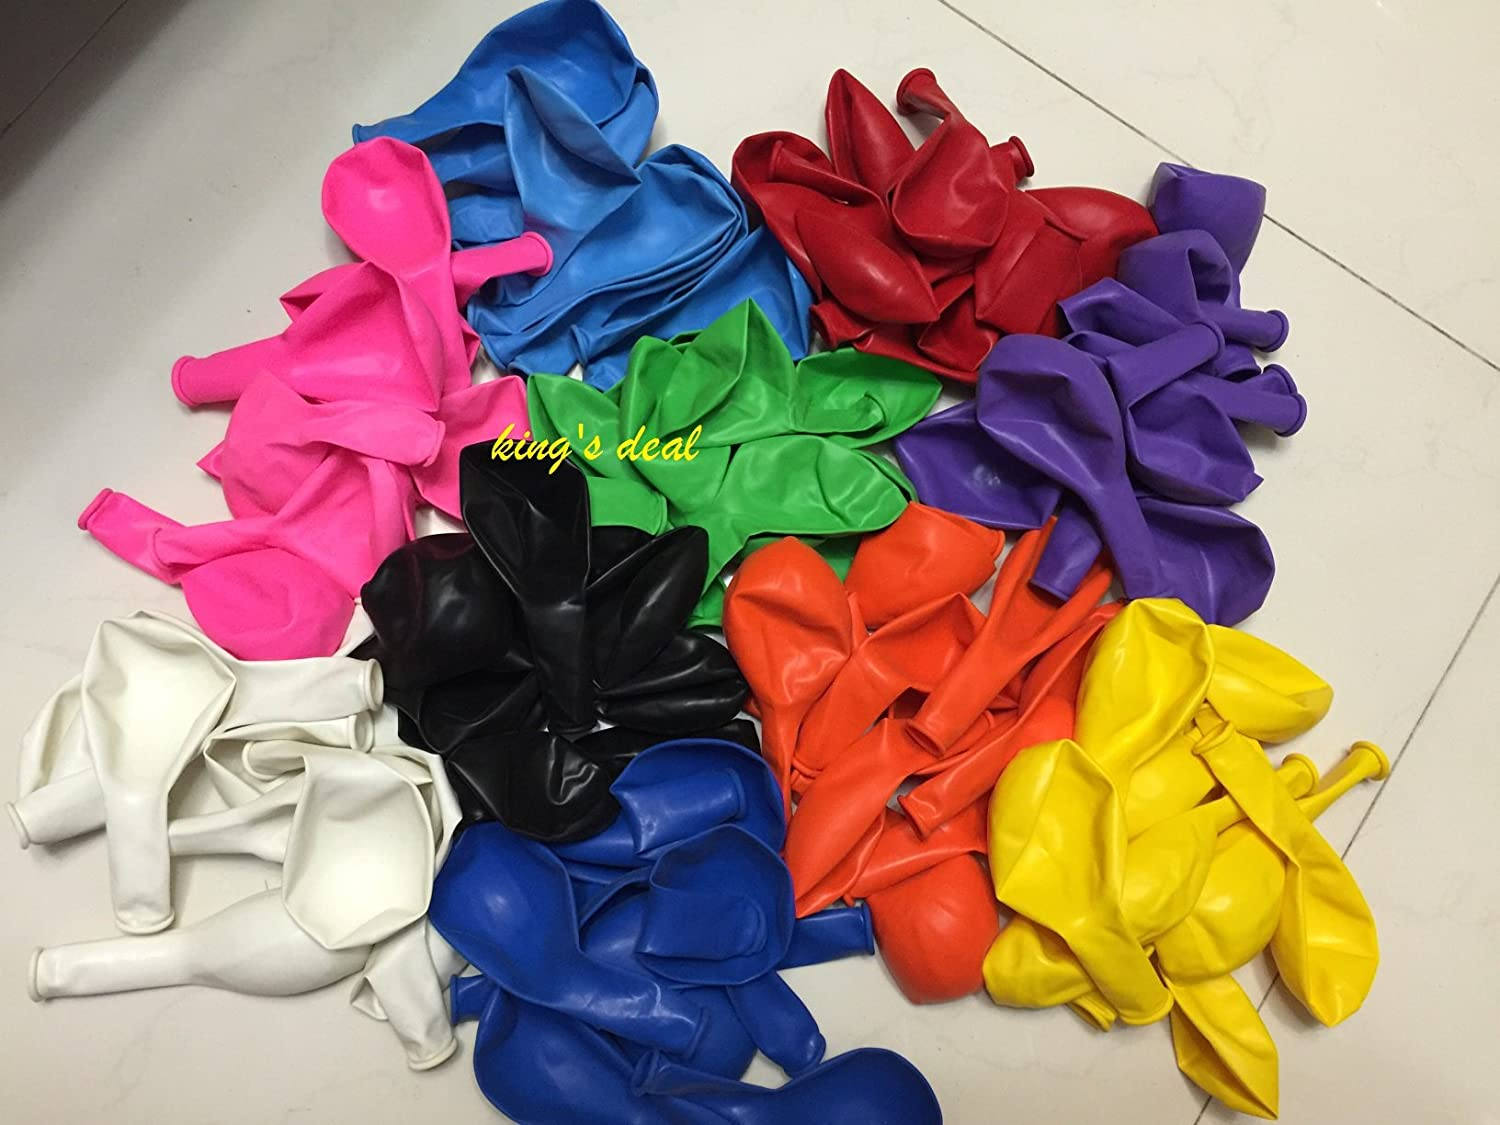 Kings deal- Tm 100/(10color x 10/) Latex Balloons - 11 Inch - Assorted Colors king/'s deal